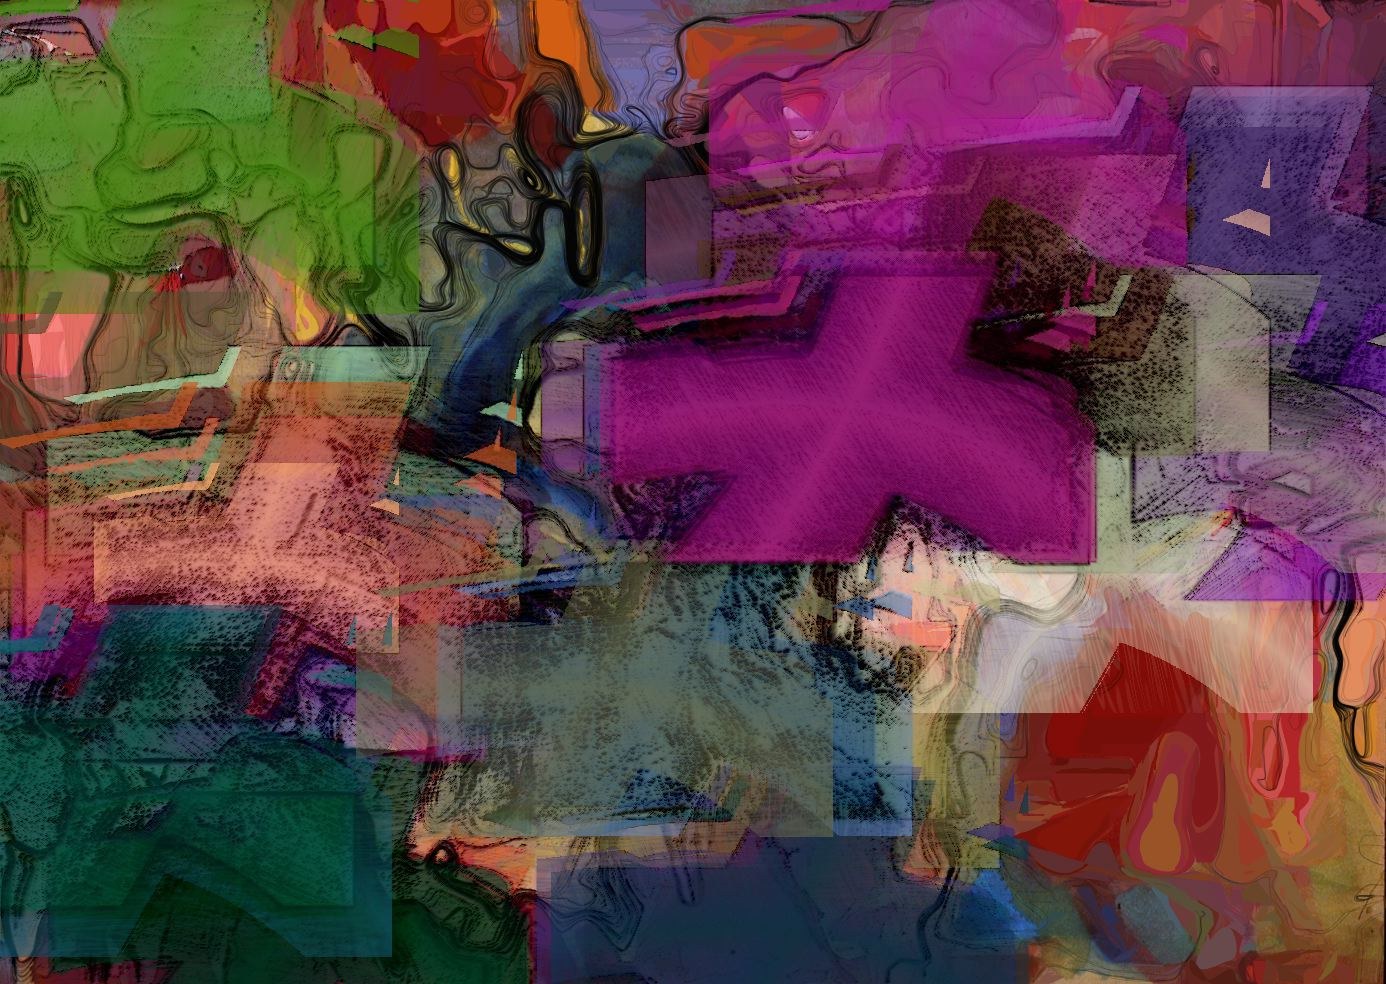 I just had fun with this digital painting using Painter and Photoshop. Abstract but nothing really deep about this work.